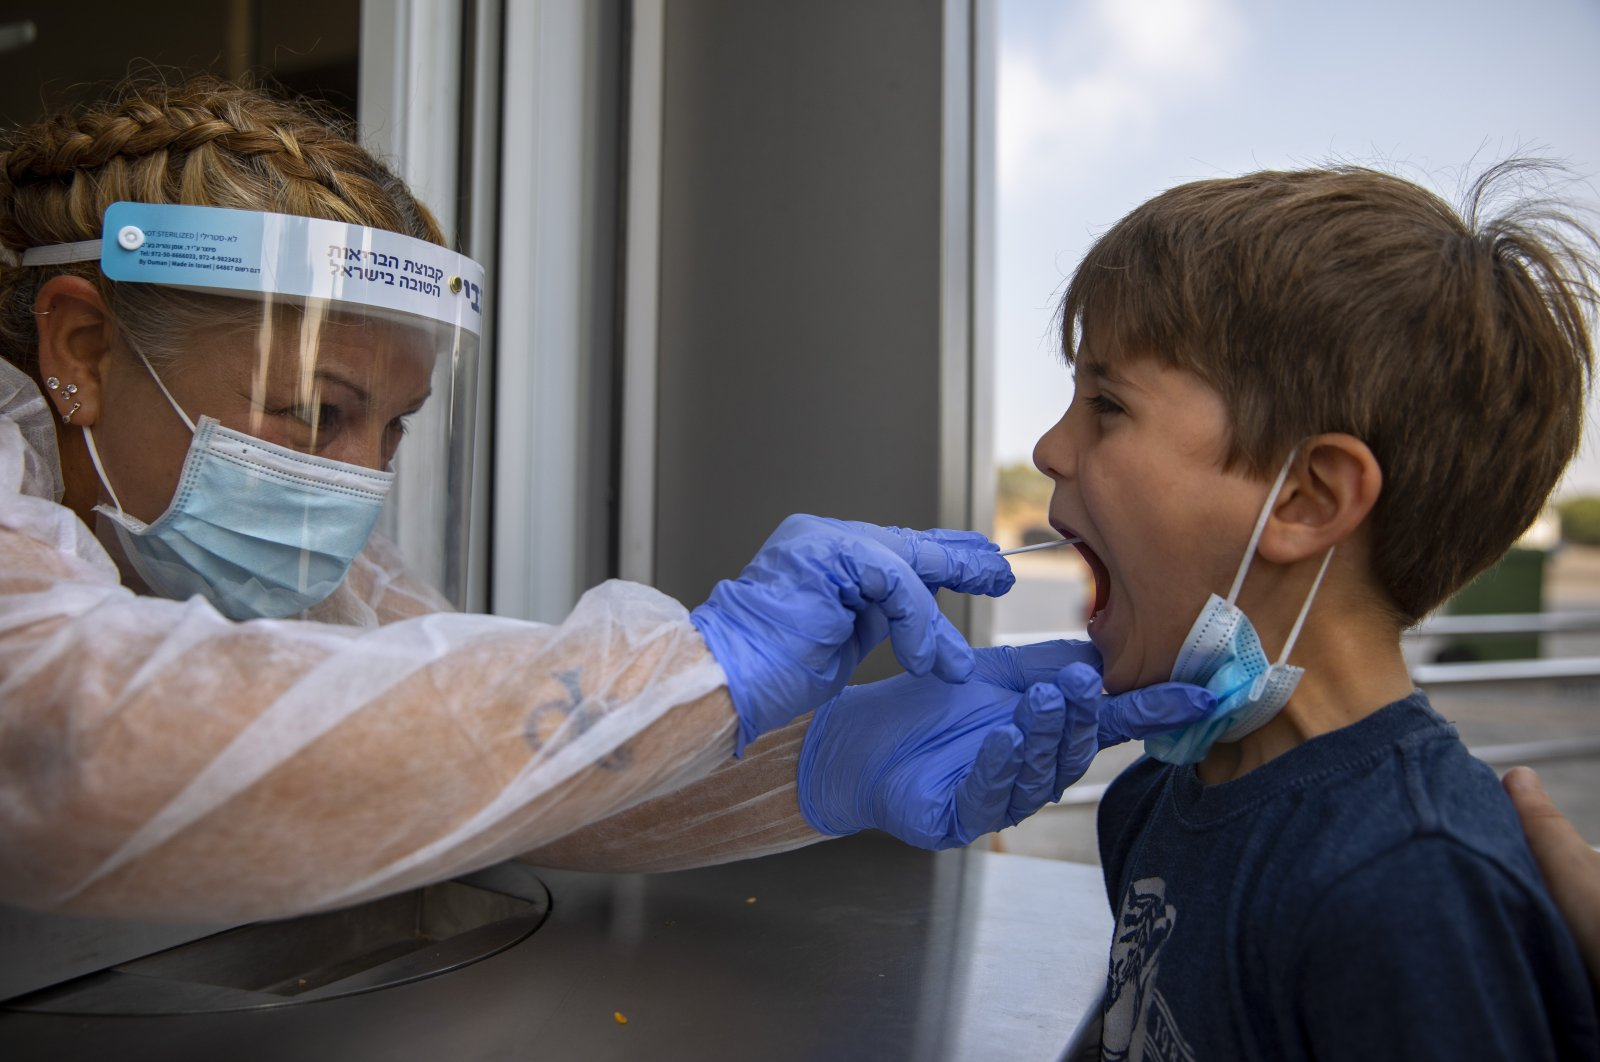 A health worker collects a swab sample from a kid to test for COVID-19 at a testing center, in Tel Aviv, Israel, Aug. 9, 2021. (AP Photo)